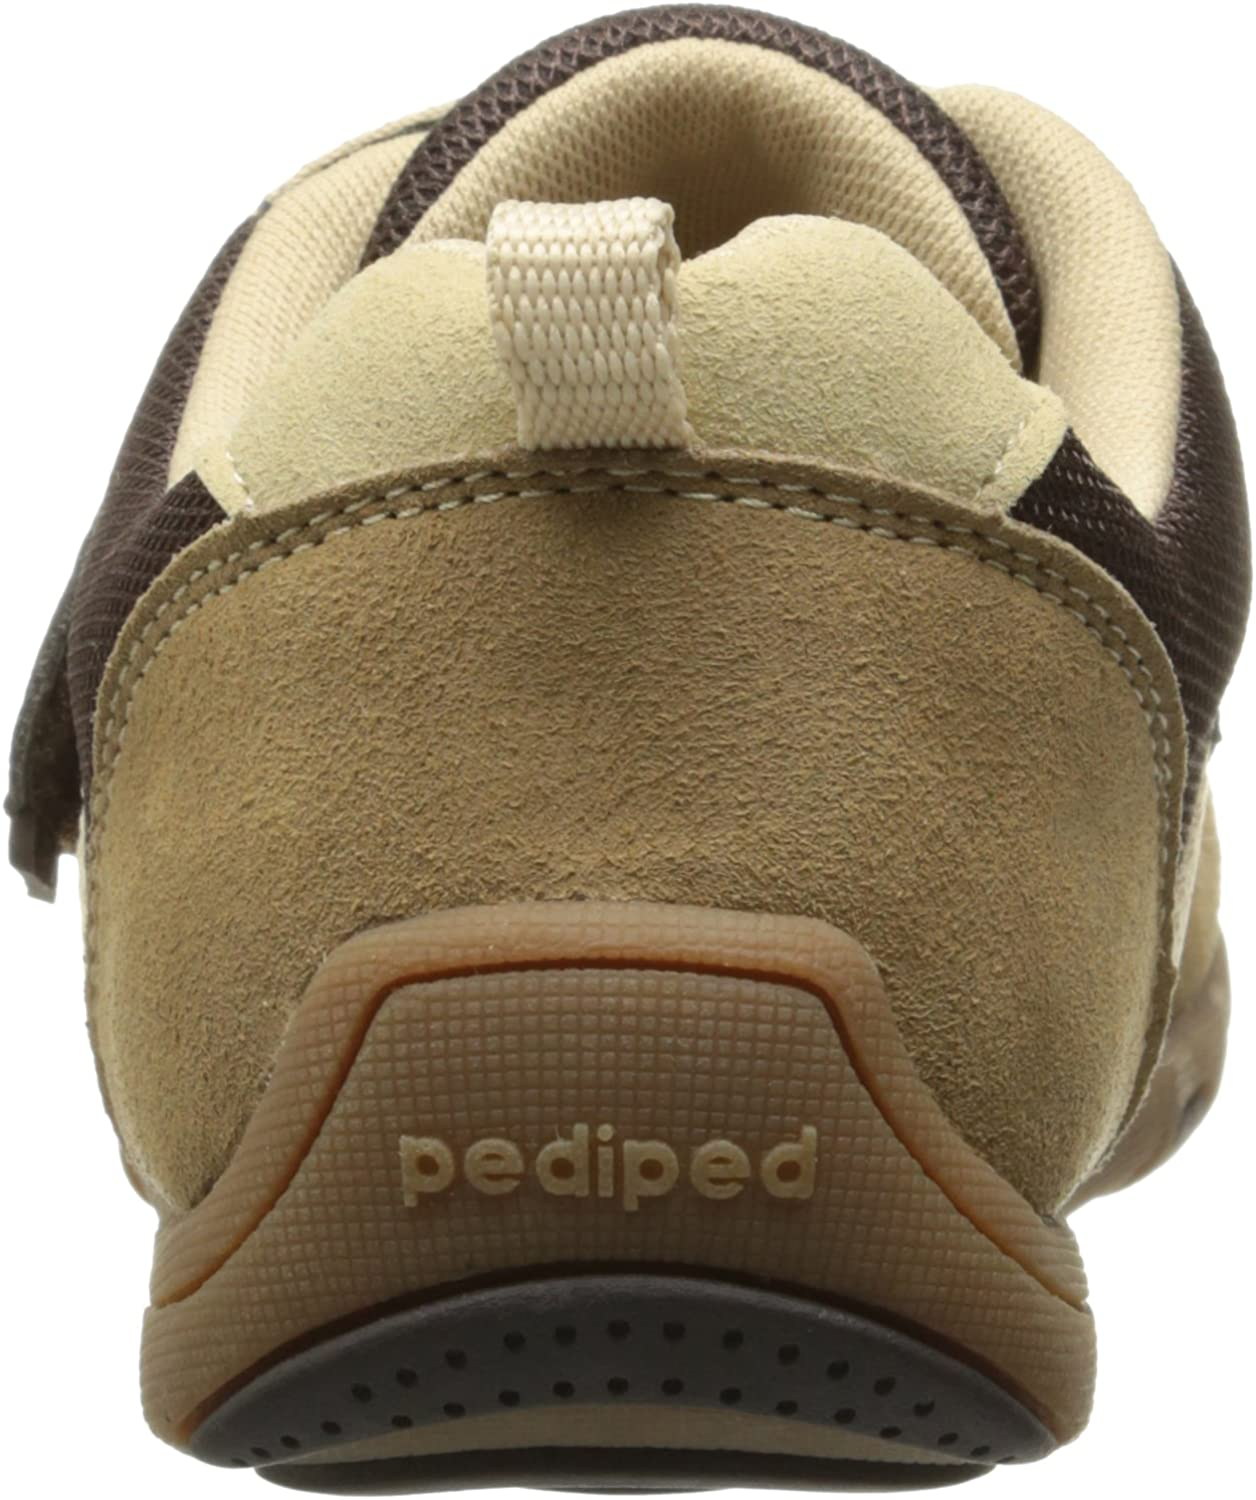 Toddler//Little Kid pediped Flex Adrian Sneaker